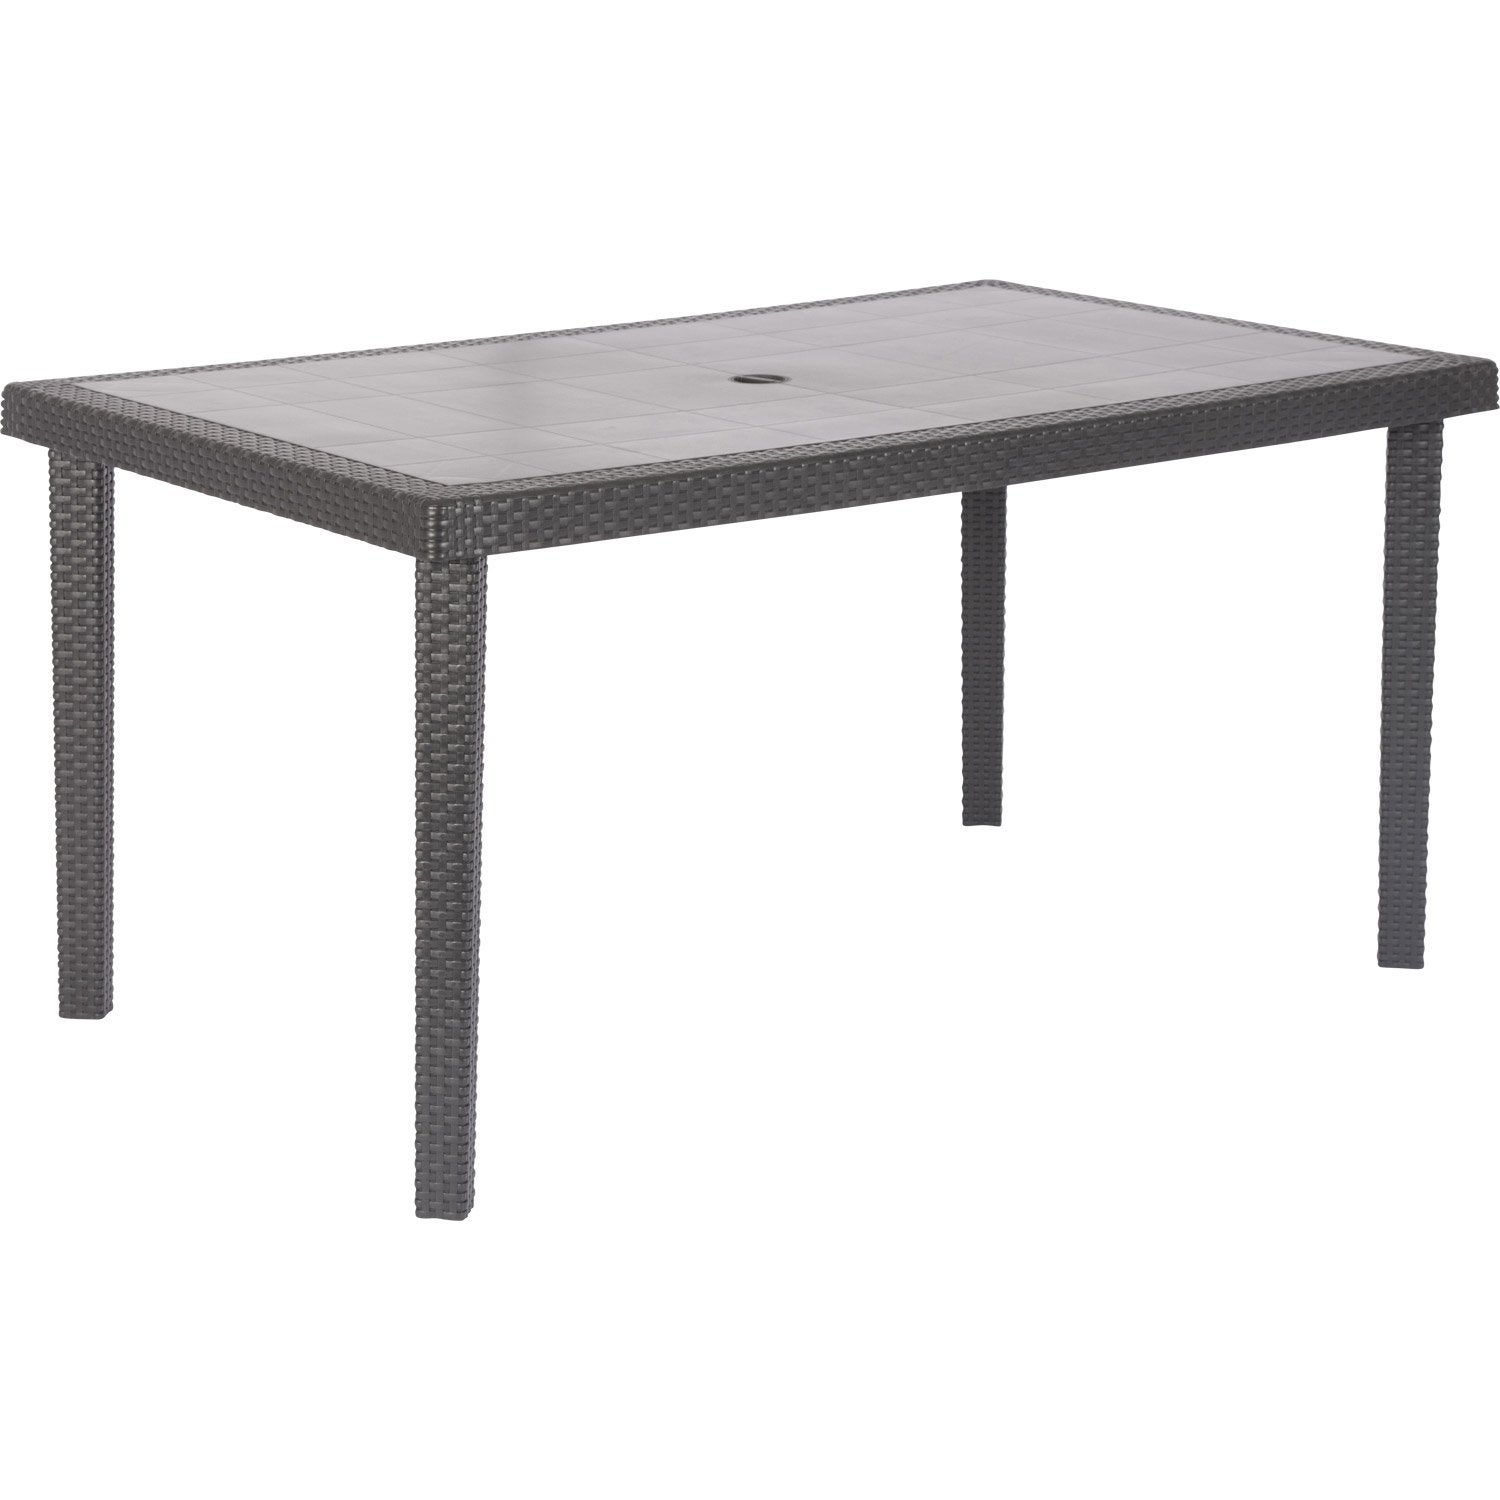 Table de jardin boh me rectangulaire anthracite 6 personnes leroy merlin - Leroy merlin table jardin ...